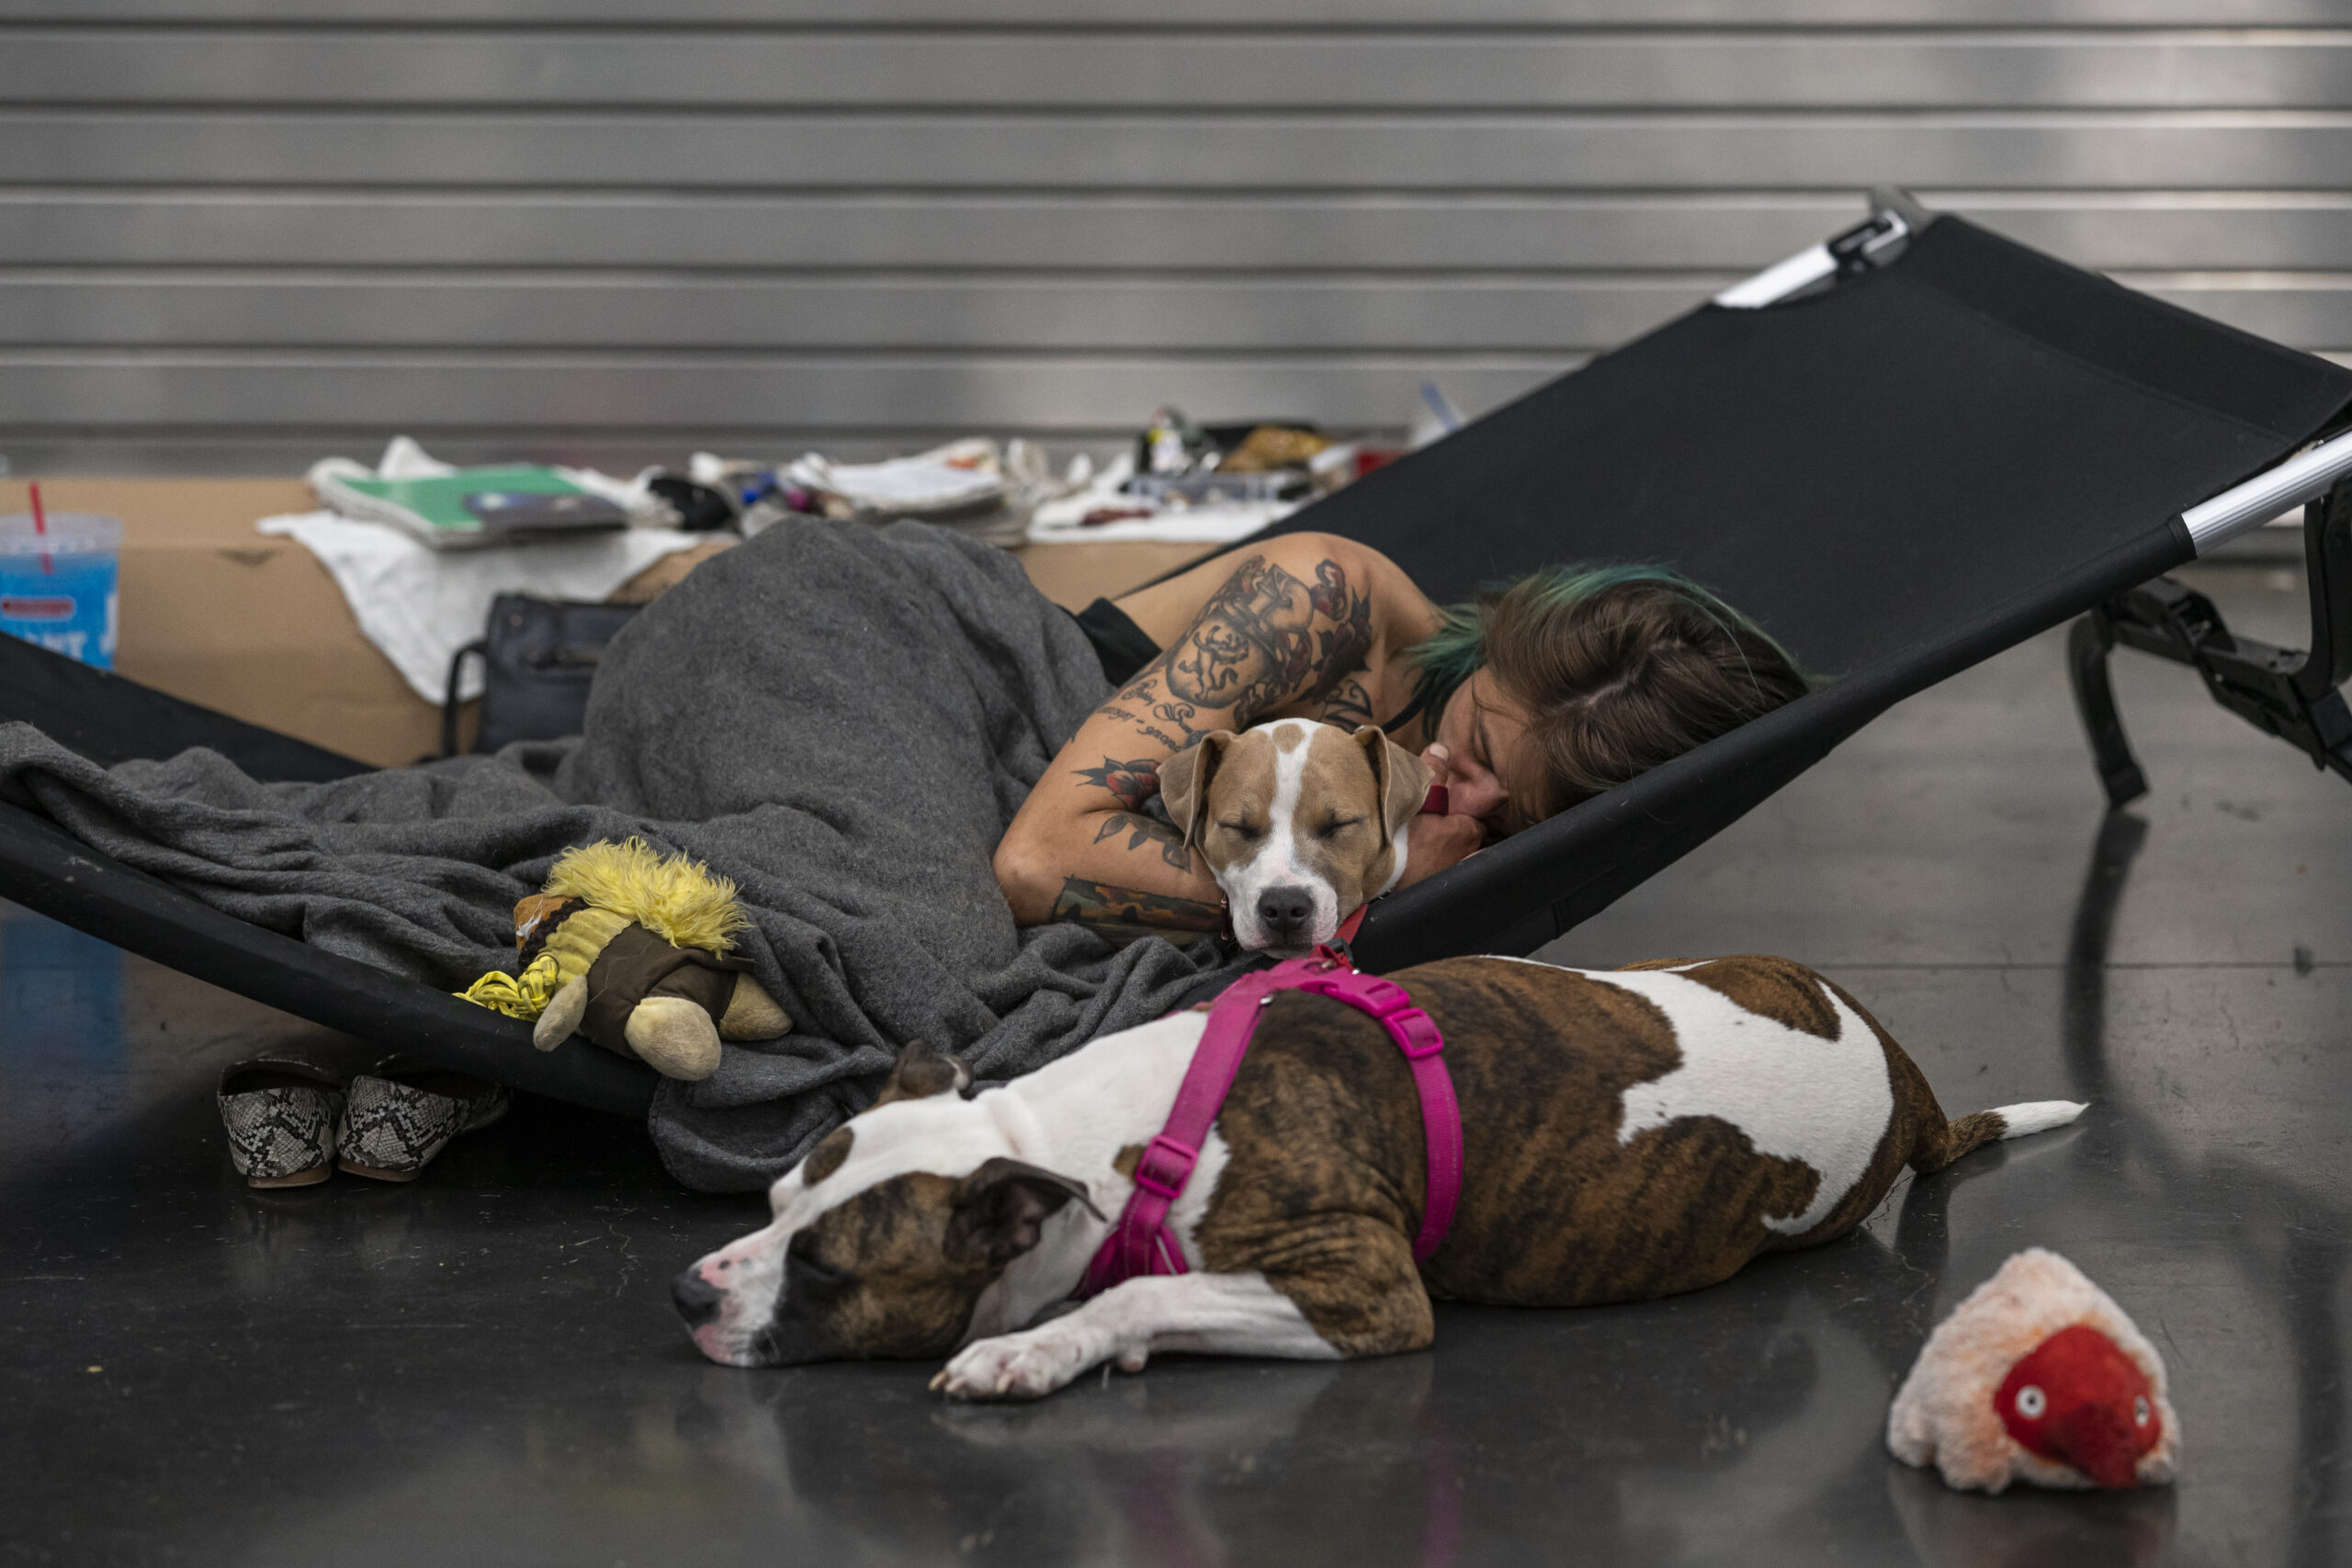 Austun Wilde rests with her two dogs at a cooling center in the Oregon Convention Center on June 27, 2021 in Portland, Oregon. Record breaking temperatures lingered over the Northwest during a historic heatwave this weekend. Credit: Nathan Howard/Getty Images